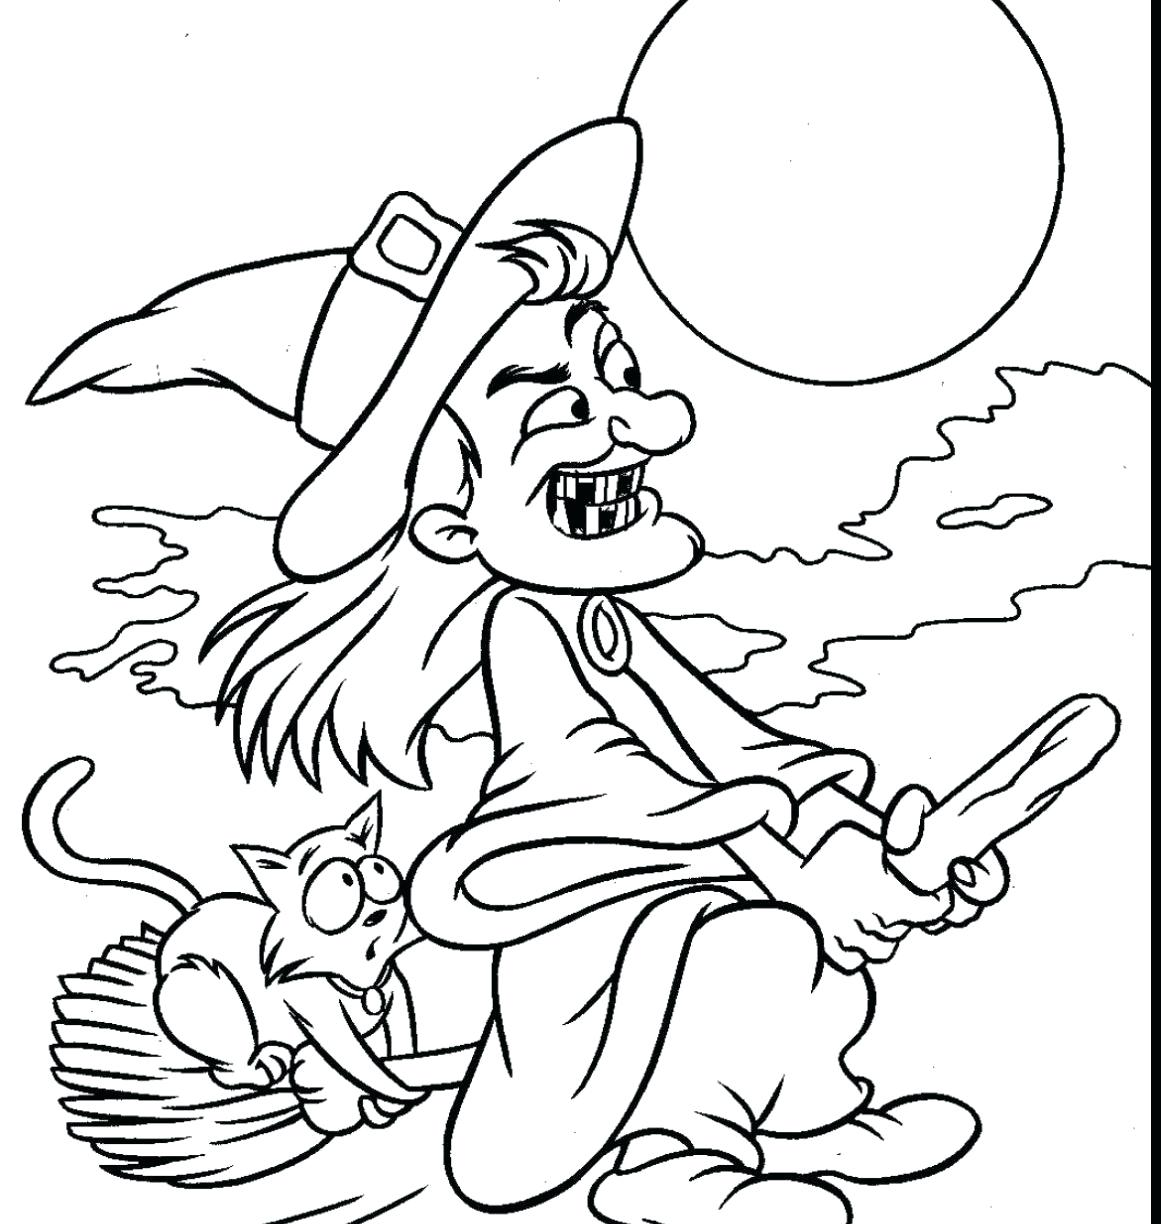 1161x1224 Coloring Coloring Pages Wizard Of Oz Lion Cool Yellow Brick Road